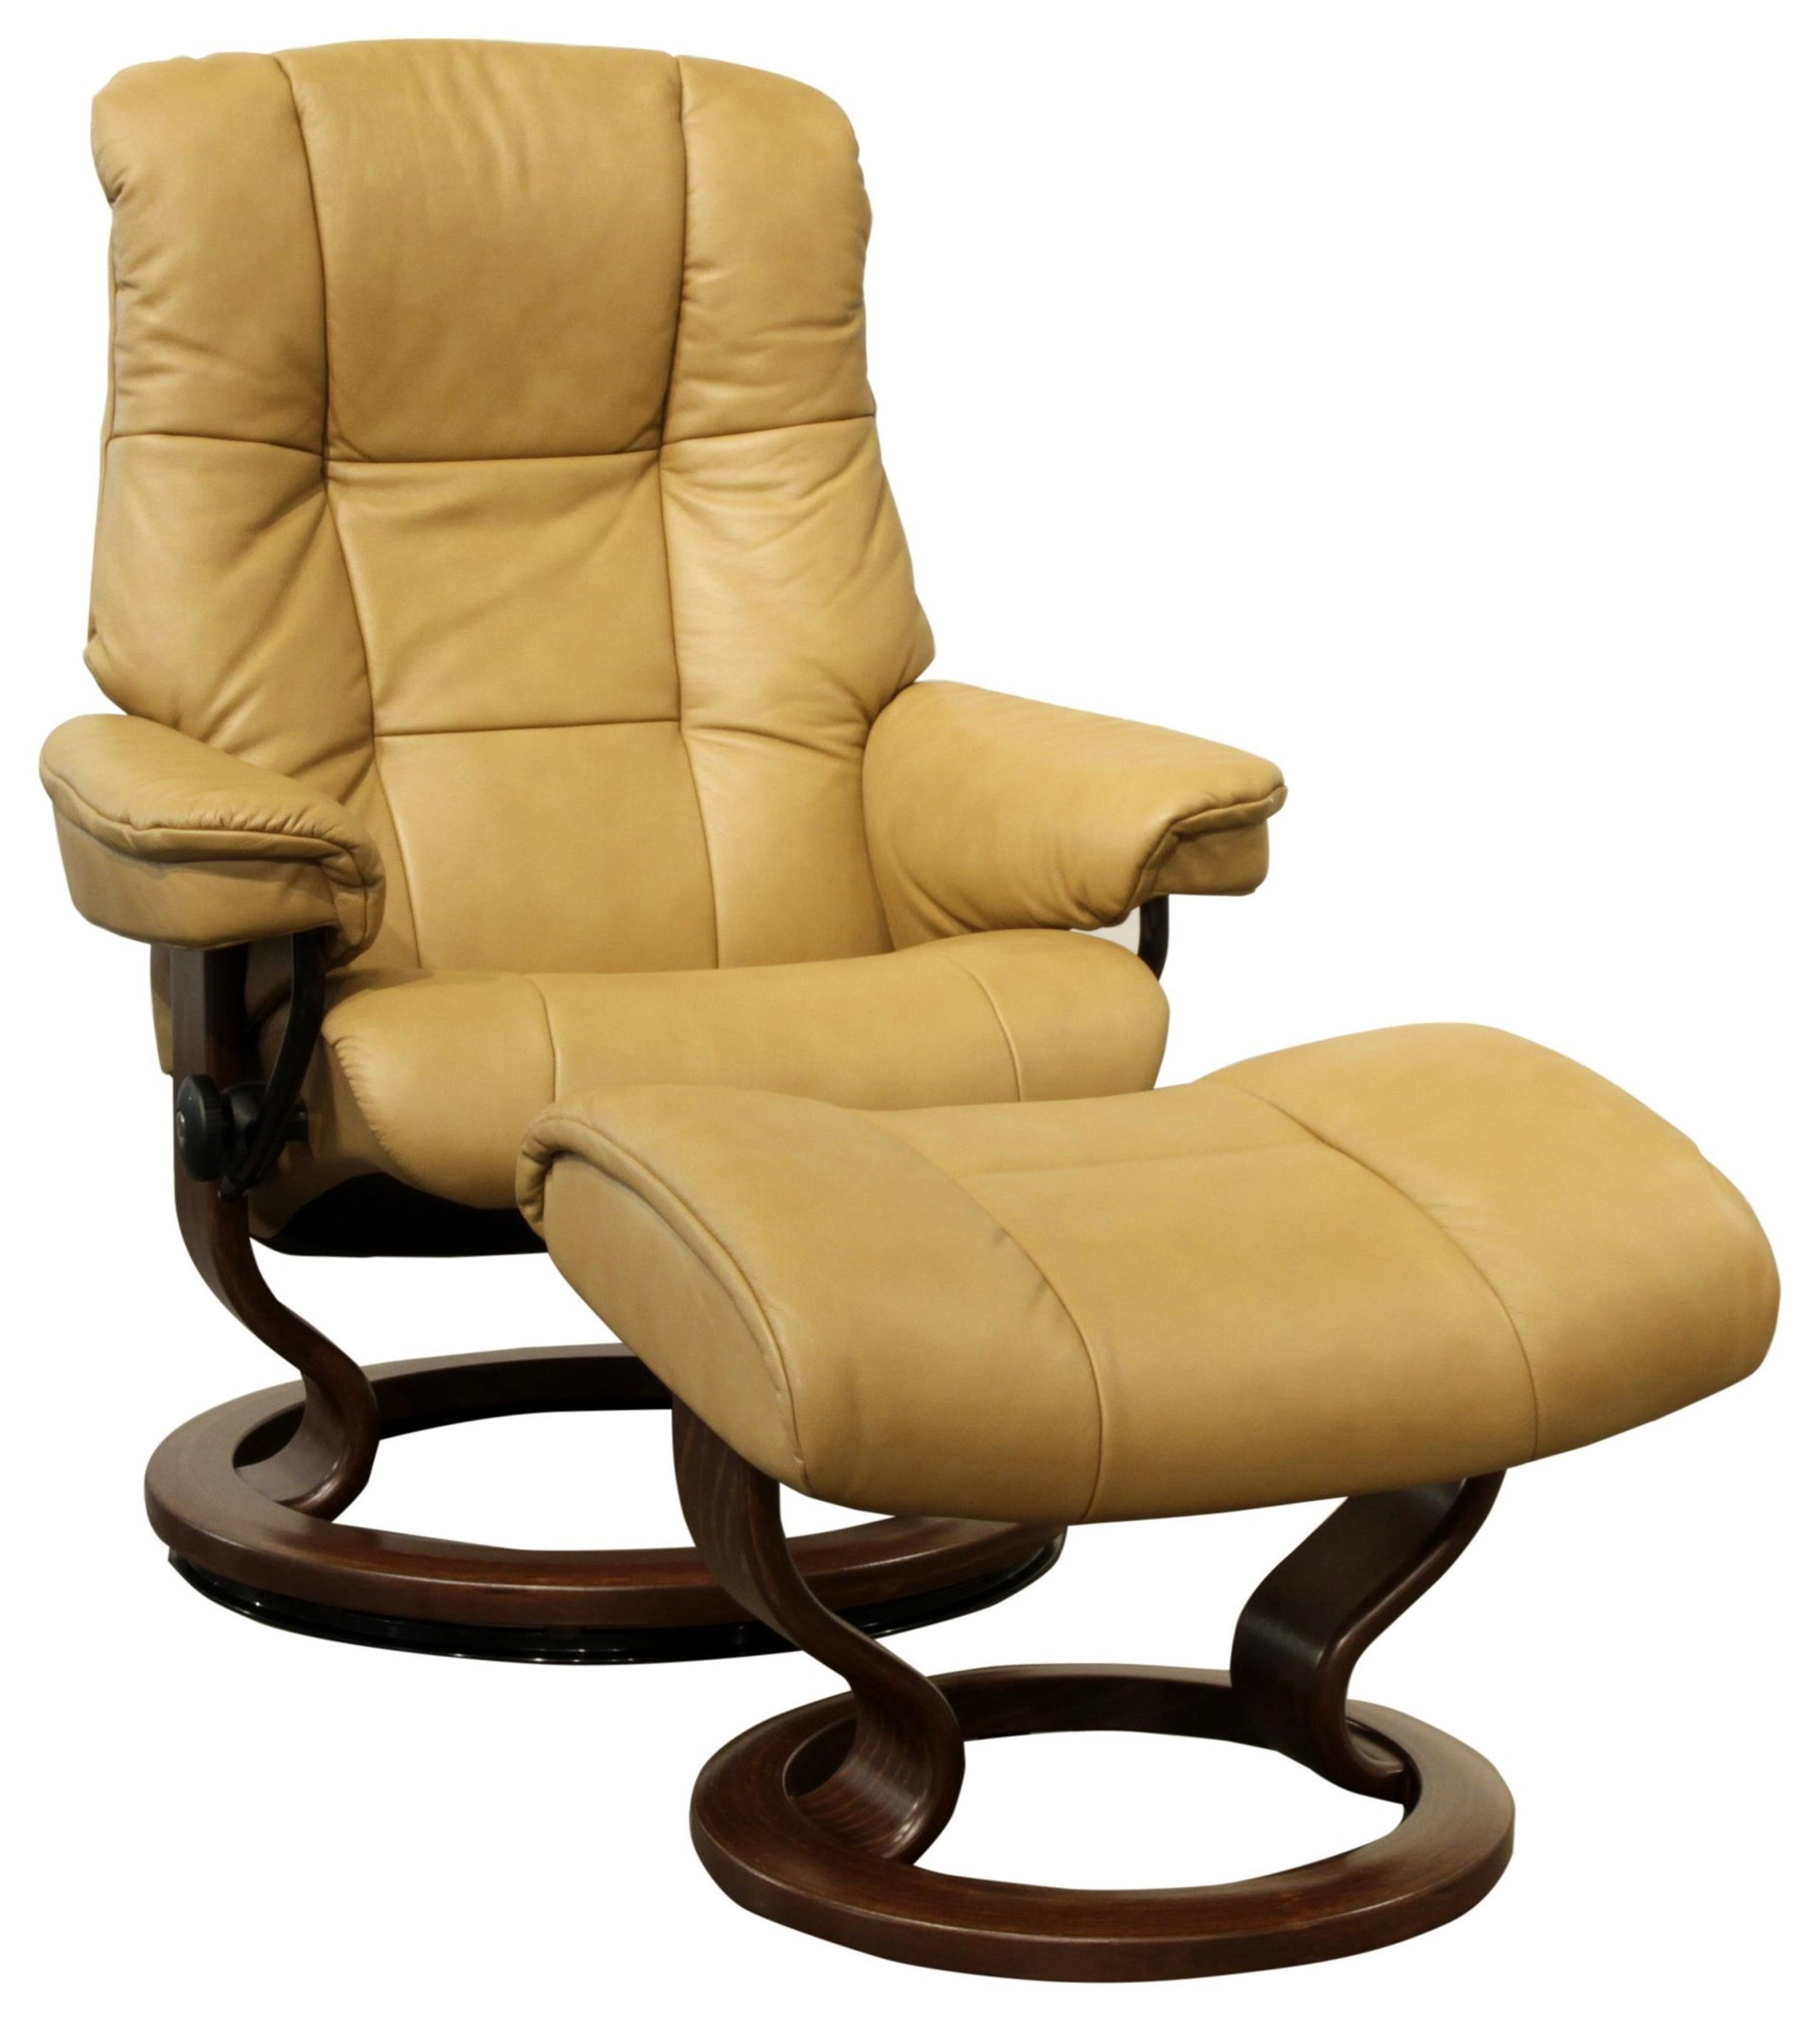 Stressless-world.com Mayfair Small Stressless Chair Ottoman By Stressless At Homeworld Furniture